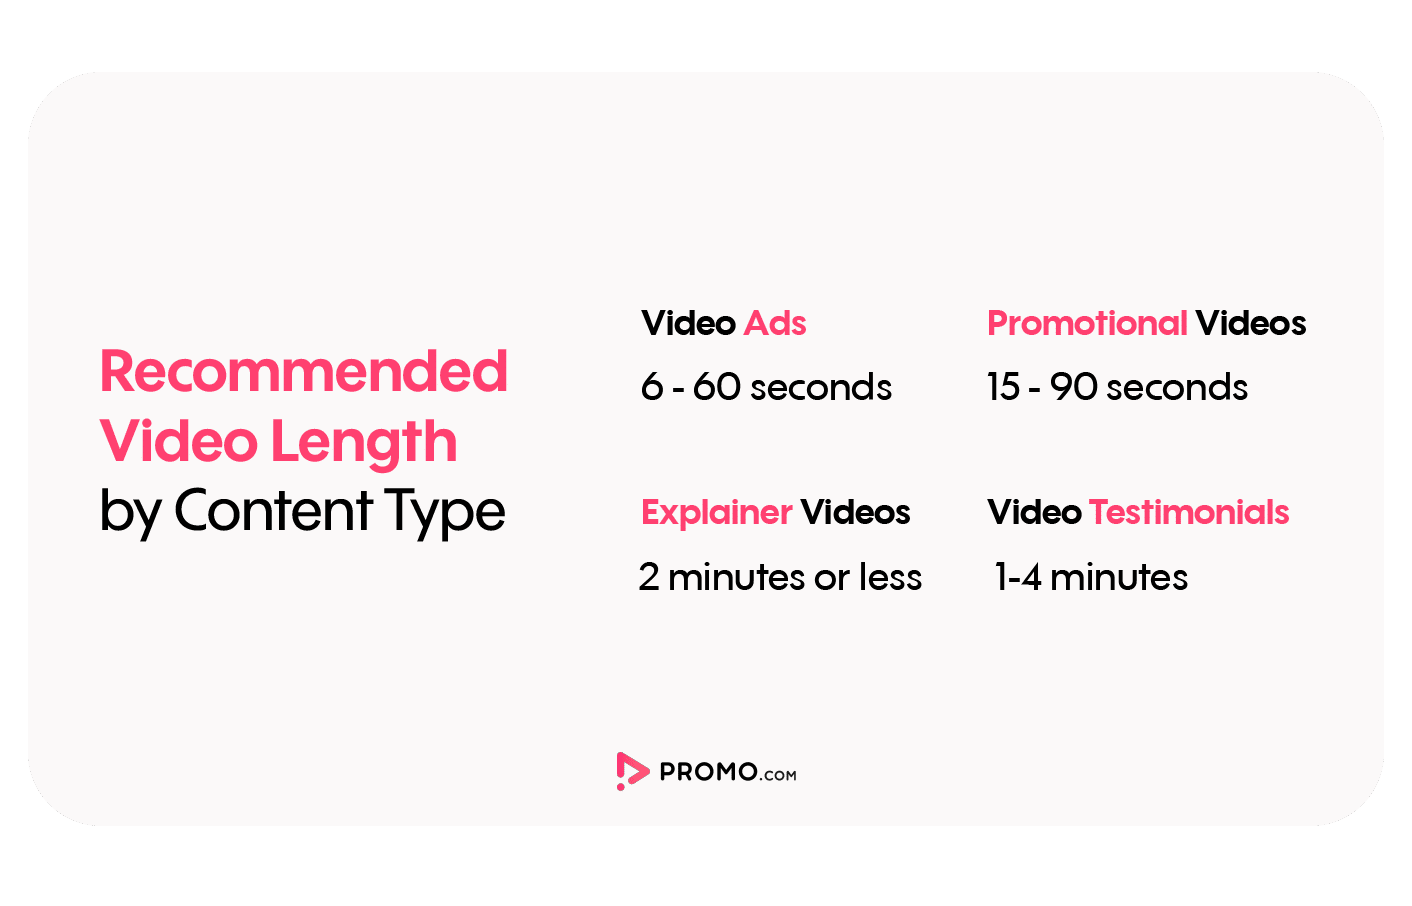 Video length by content type